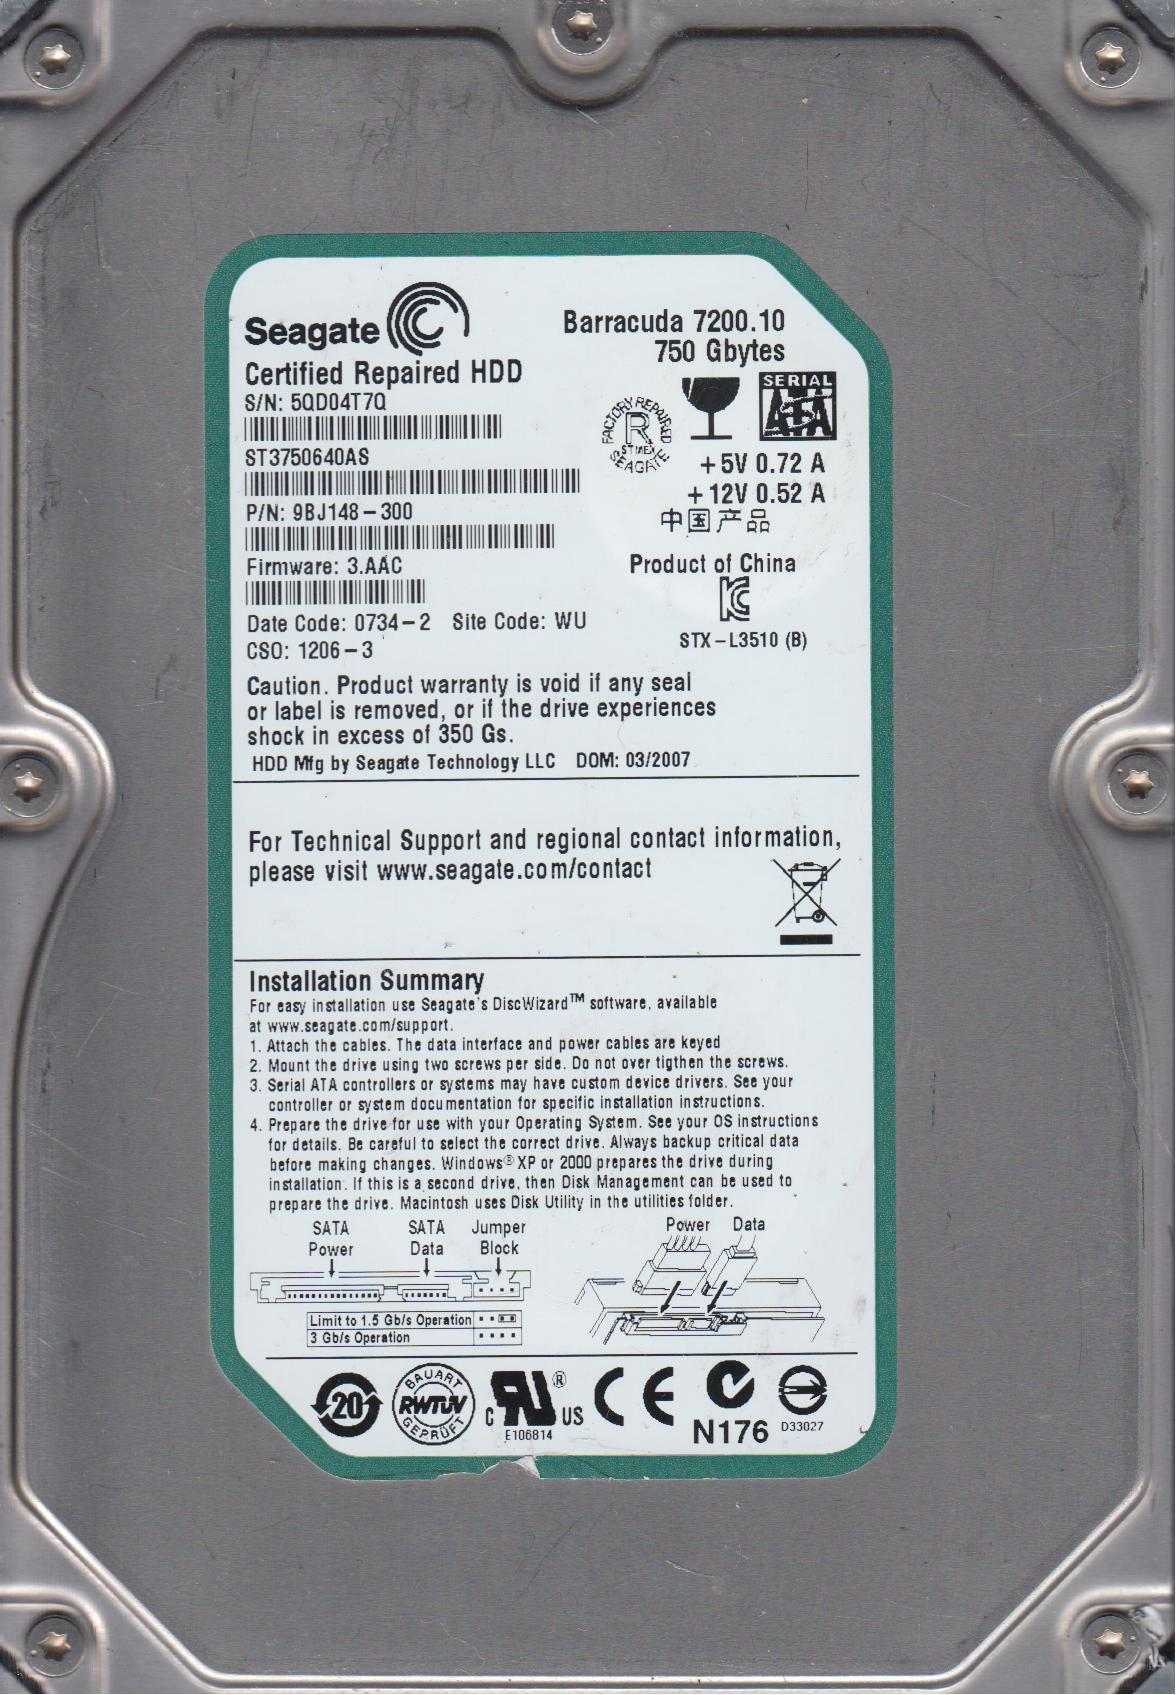 Dell Precision 390 Seagate ST3750630AS Windows 8